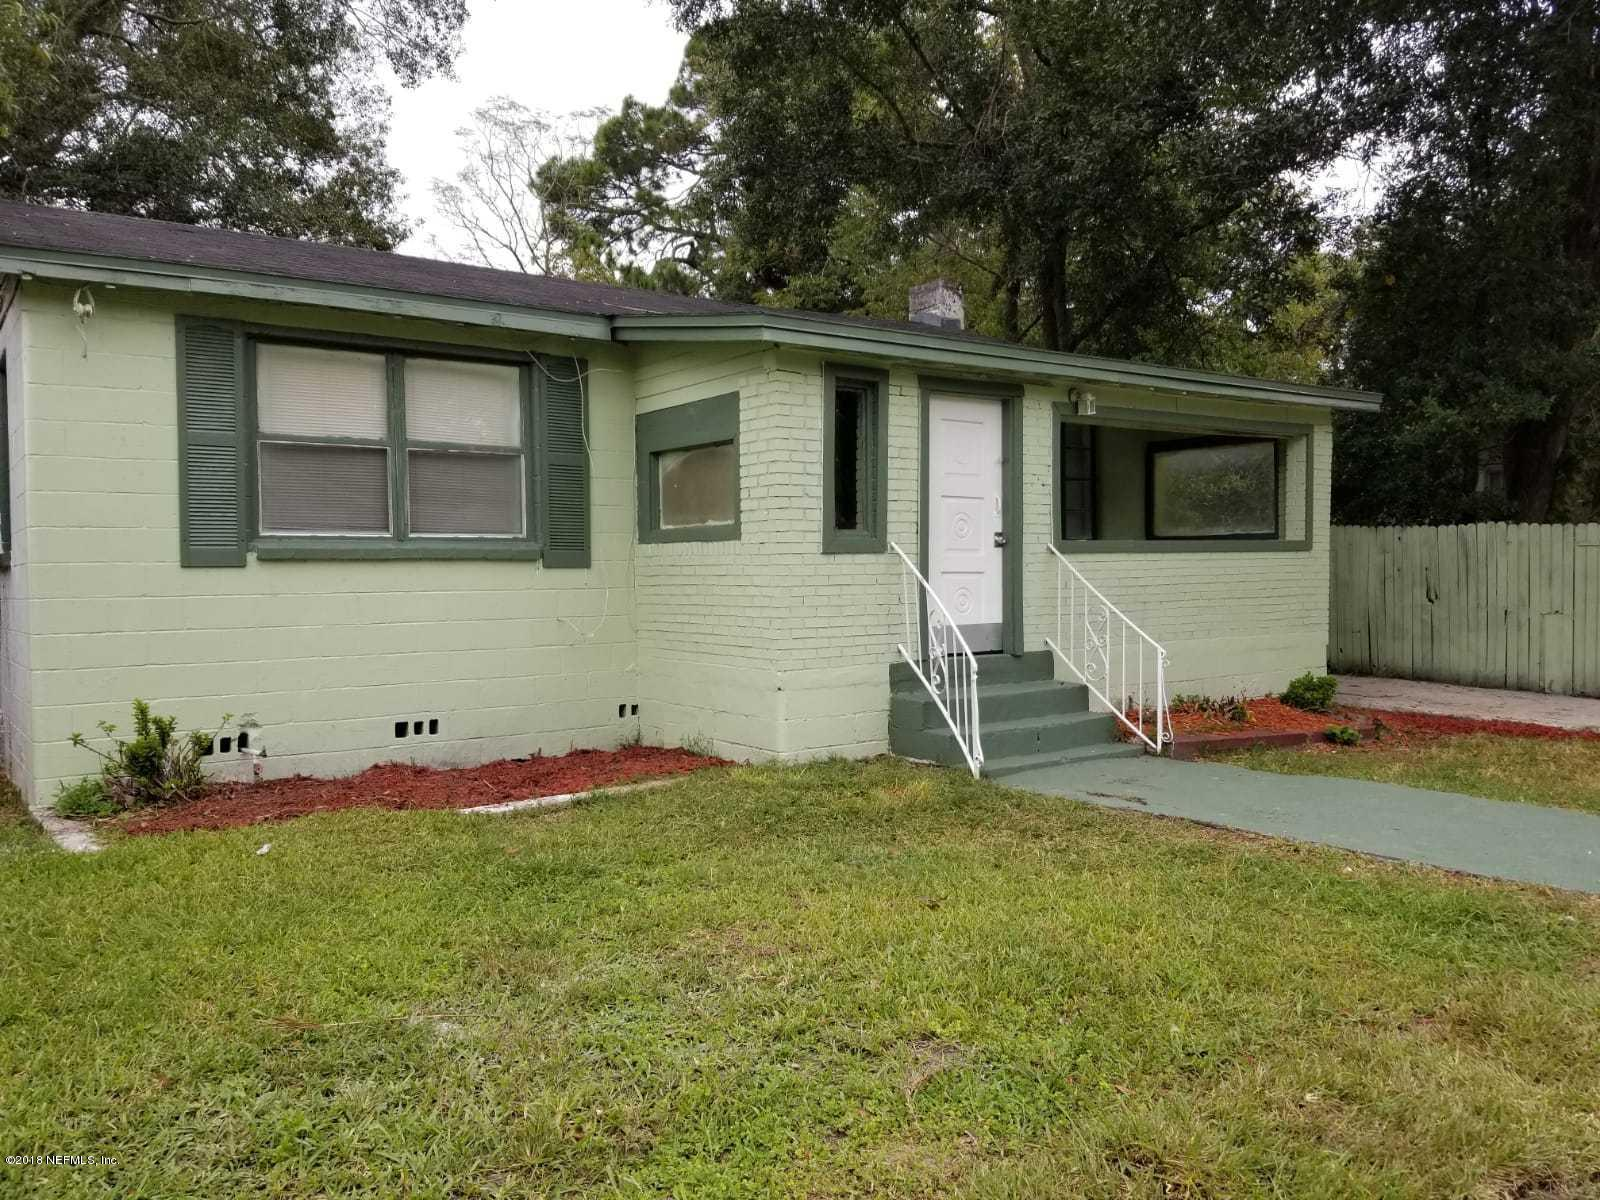 1625 9TH, JACKSONVILLE, FLORIDA 32209, 4 Bedrooms Bedrooms, ,1 BathroomBathrooms,Commercial,For sale,9TH,969109